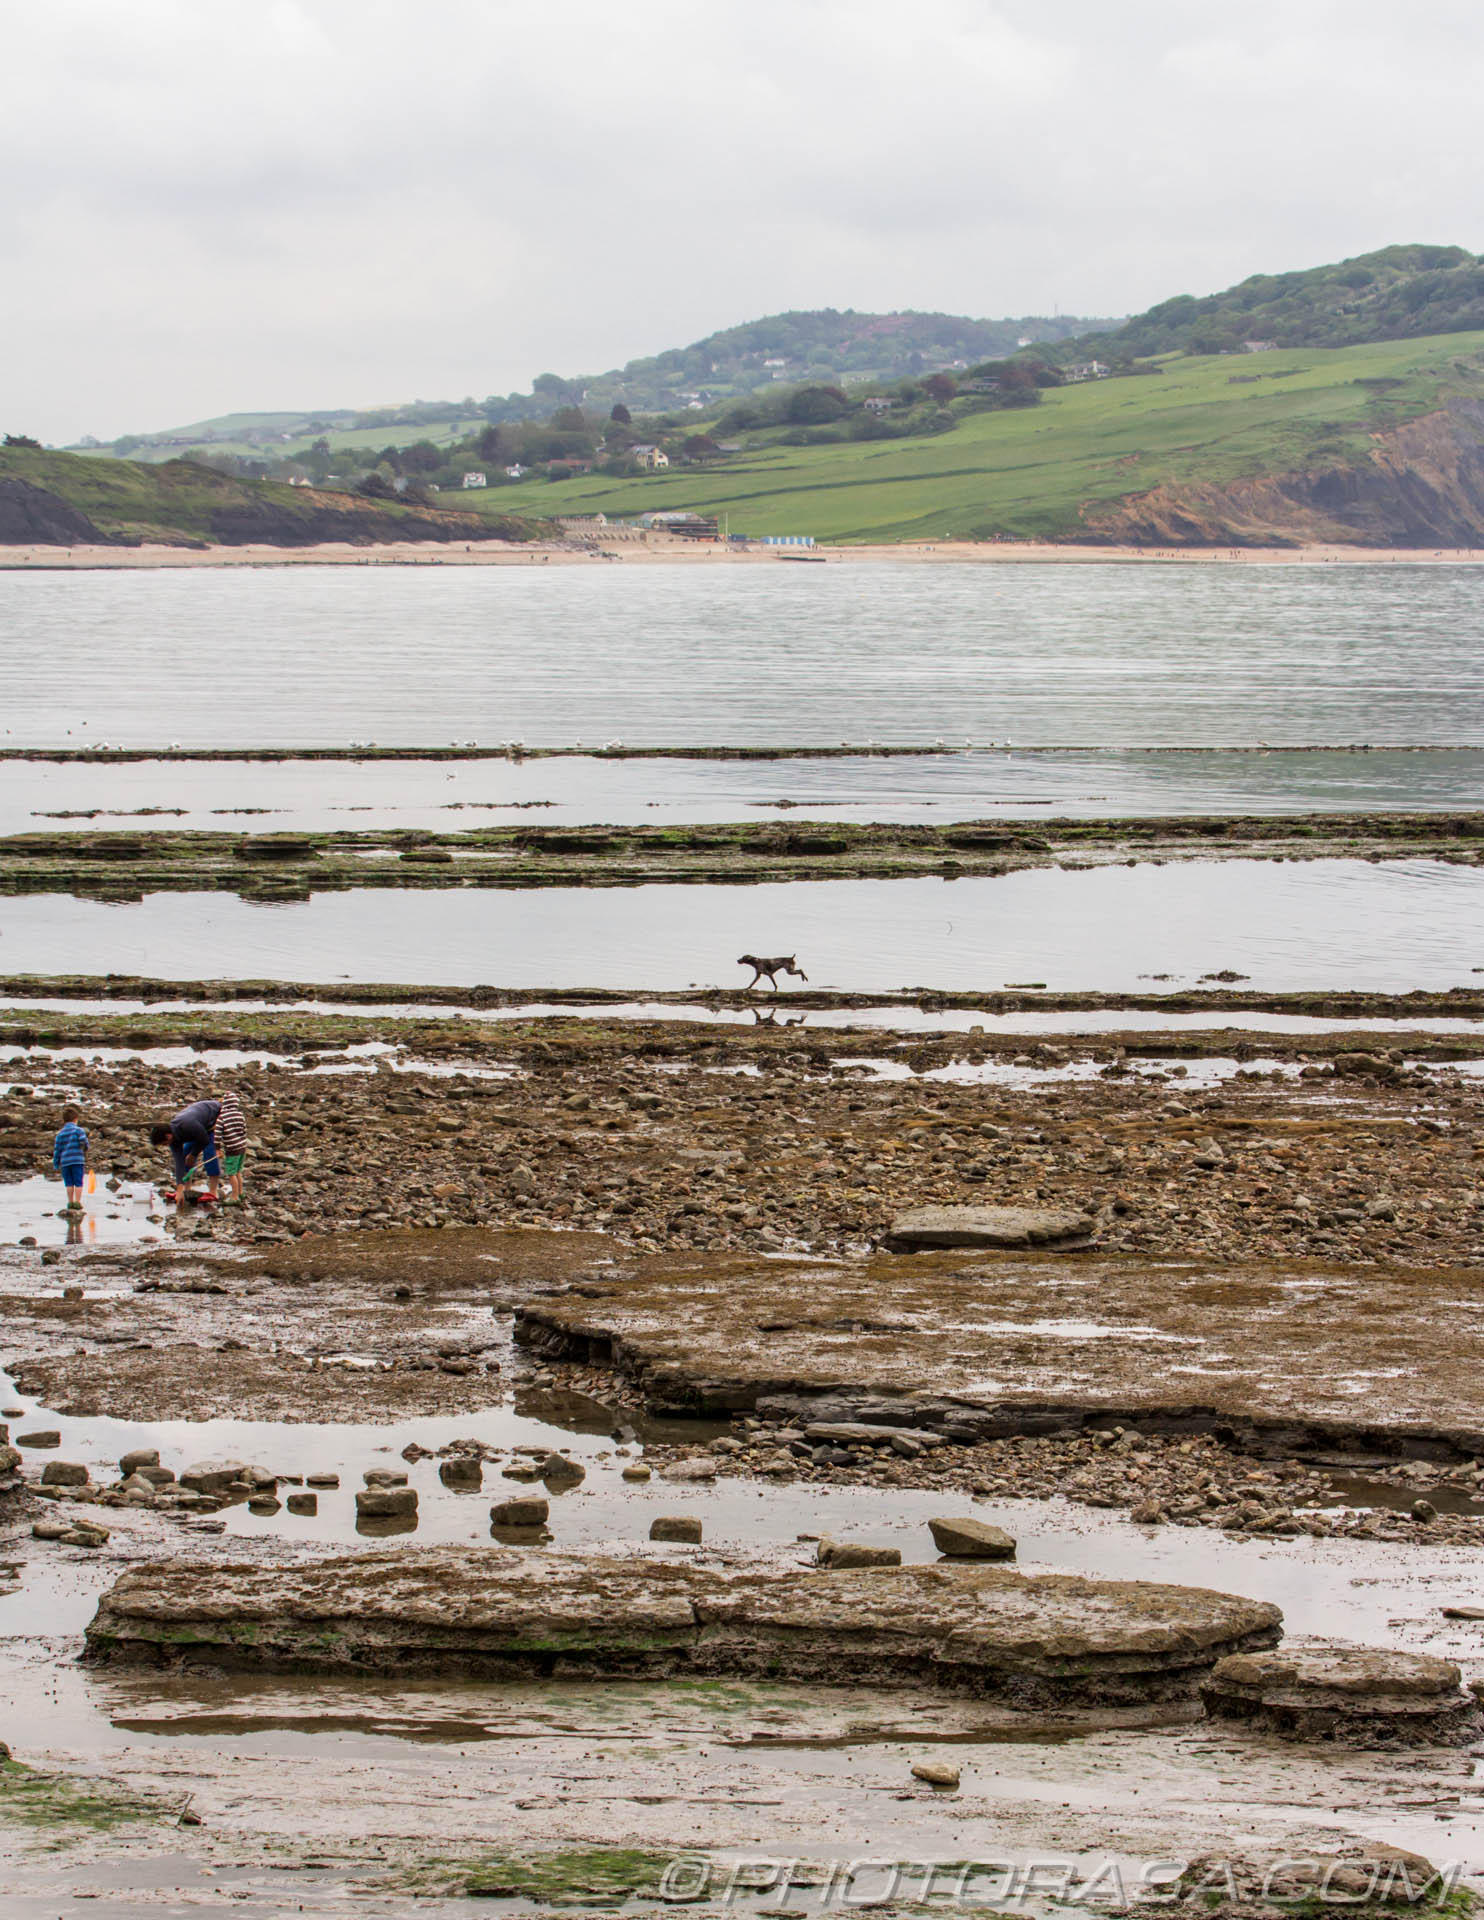 http://photorasa.com/walking-dog-jurassic-coast/coastal-scene-with-landscape-dog-an-holidaymakers/